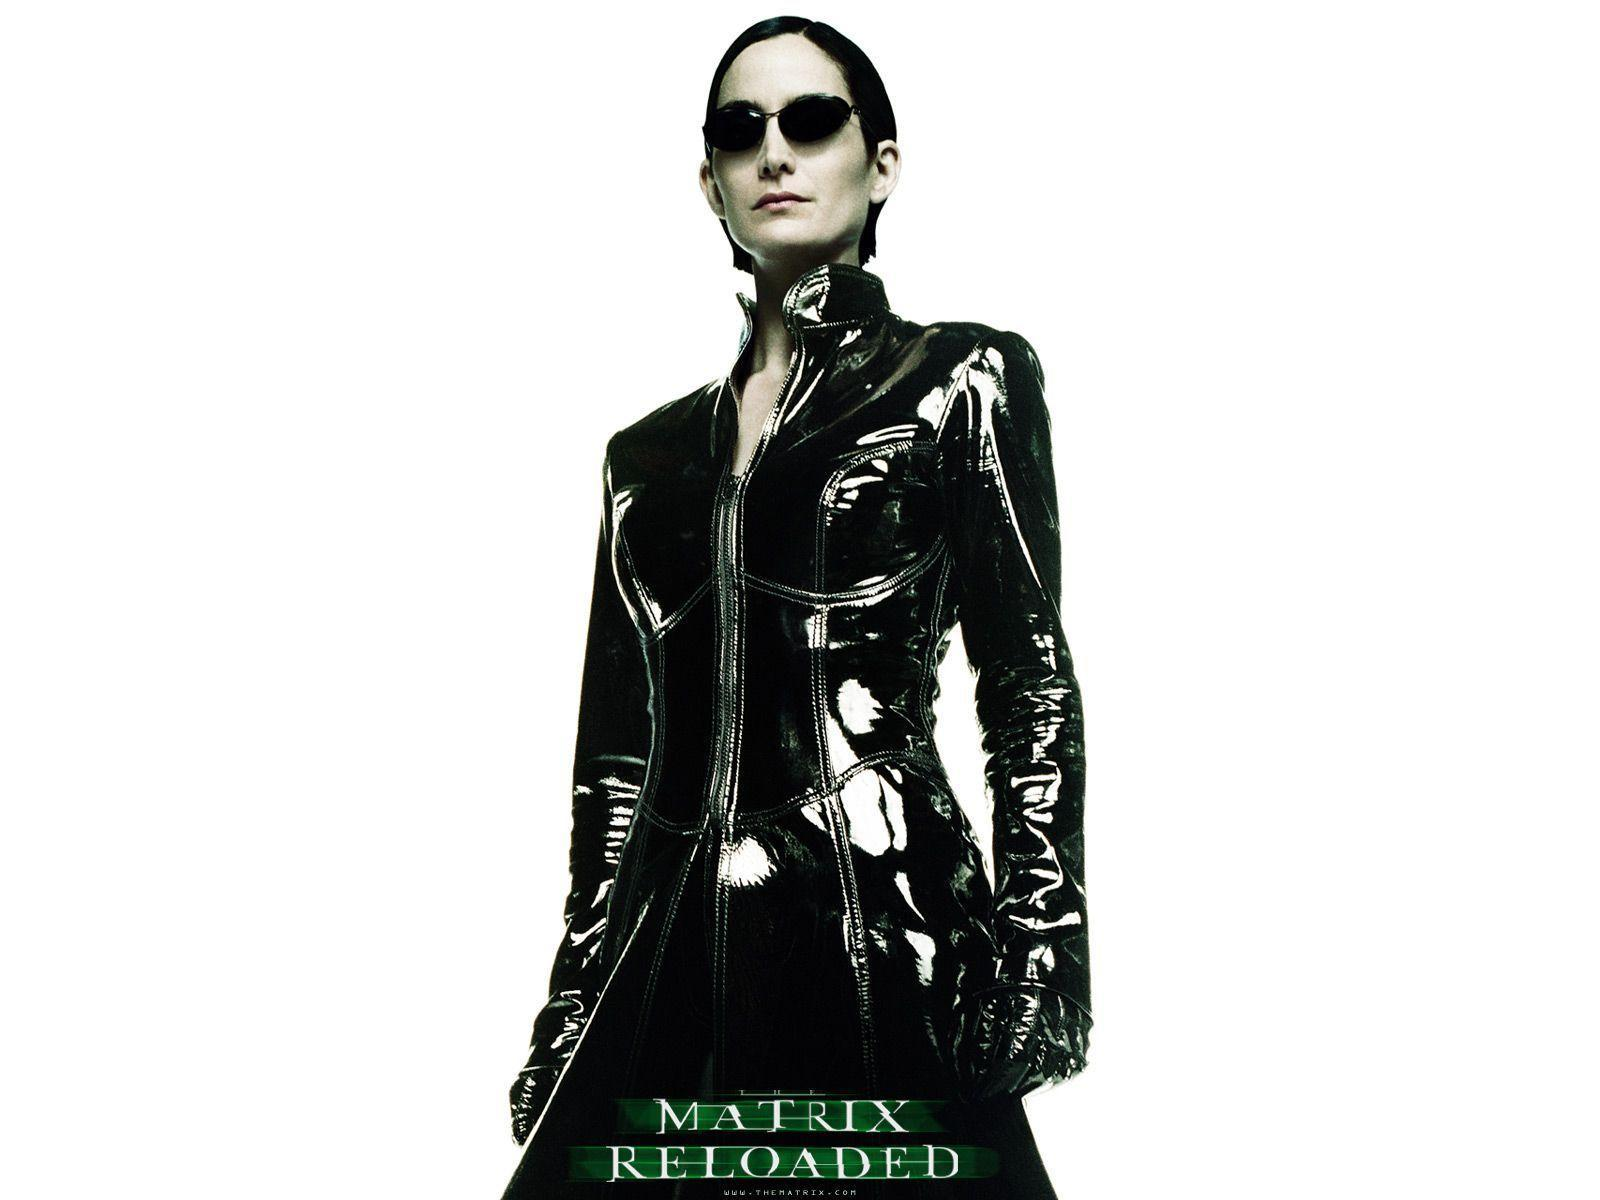 The Matrix Reloaded HD Wallpapers | Download High Quality ...